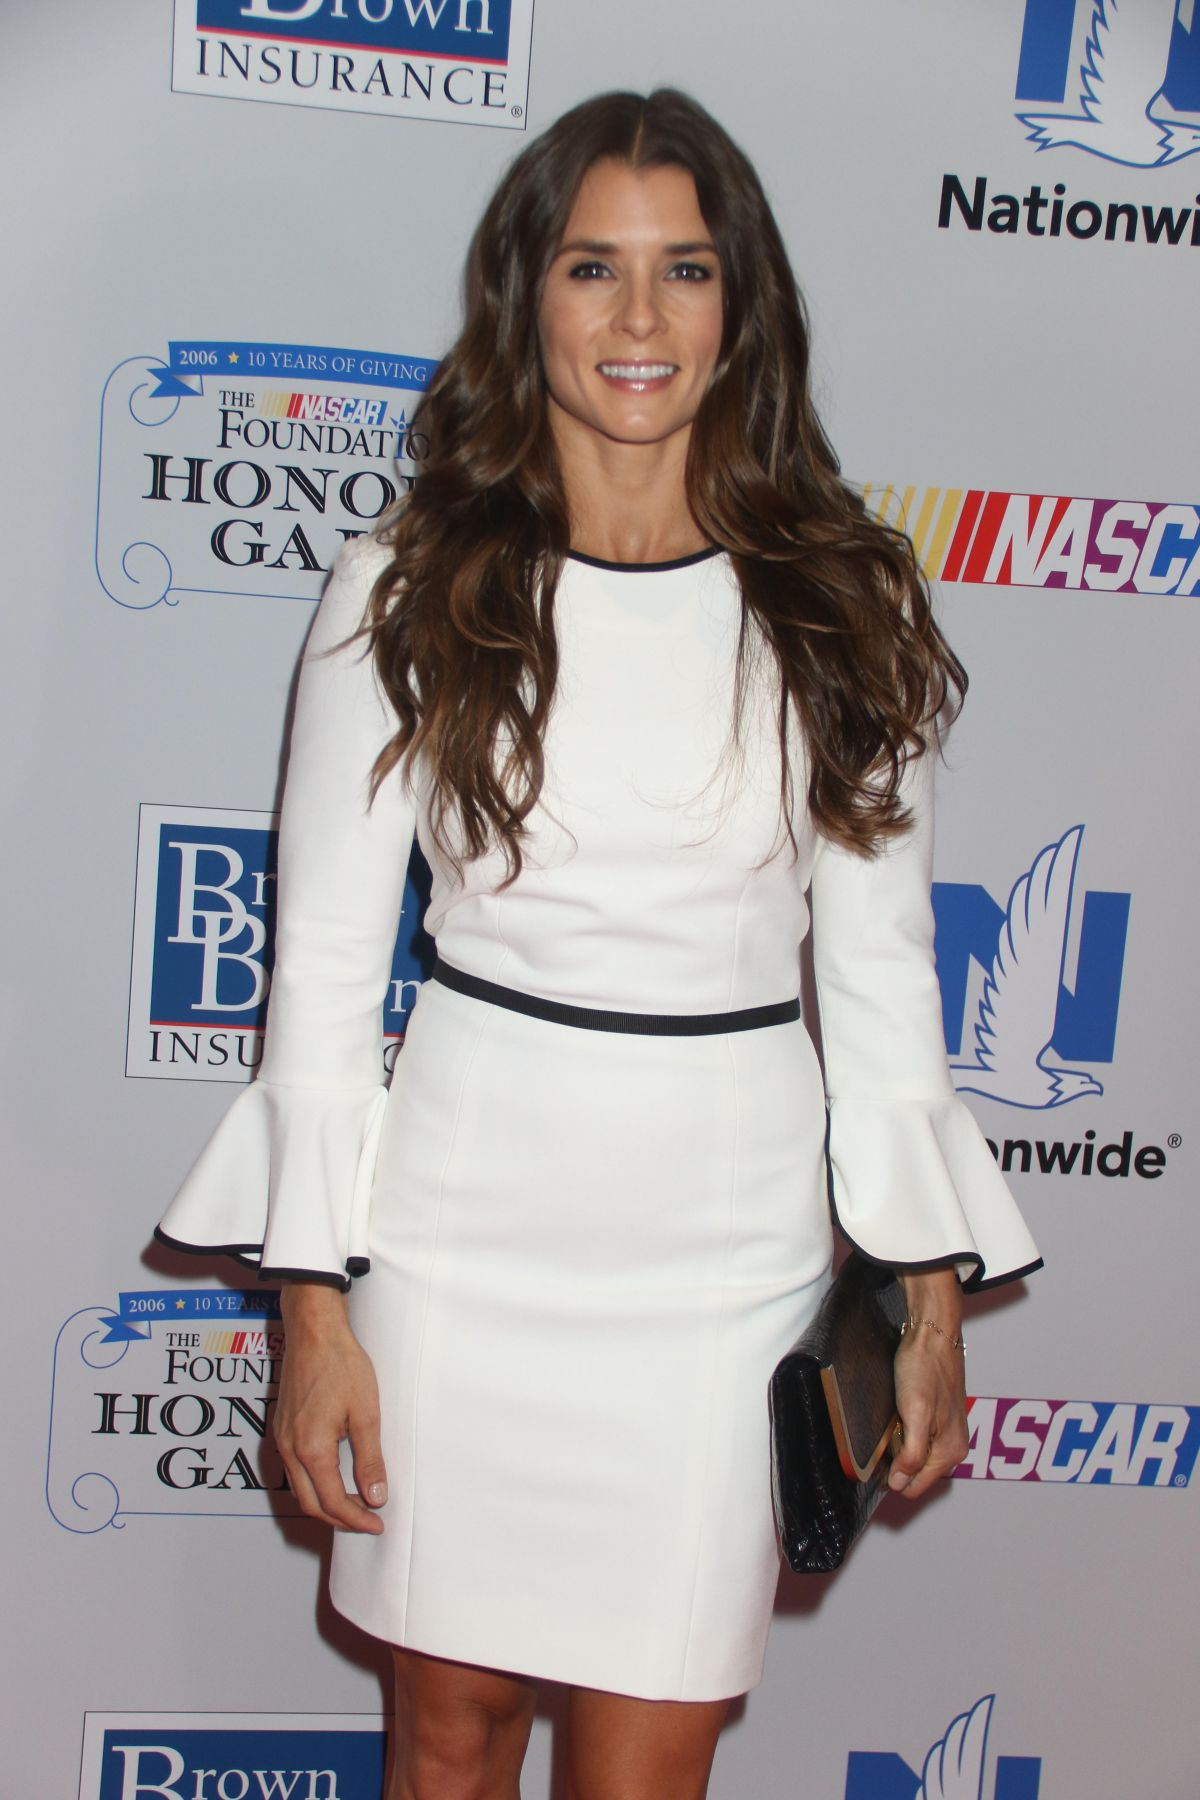 DANICA PATRICK at Nascar Foundation Honors Gala in New York 09/27/2016